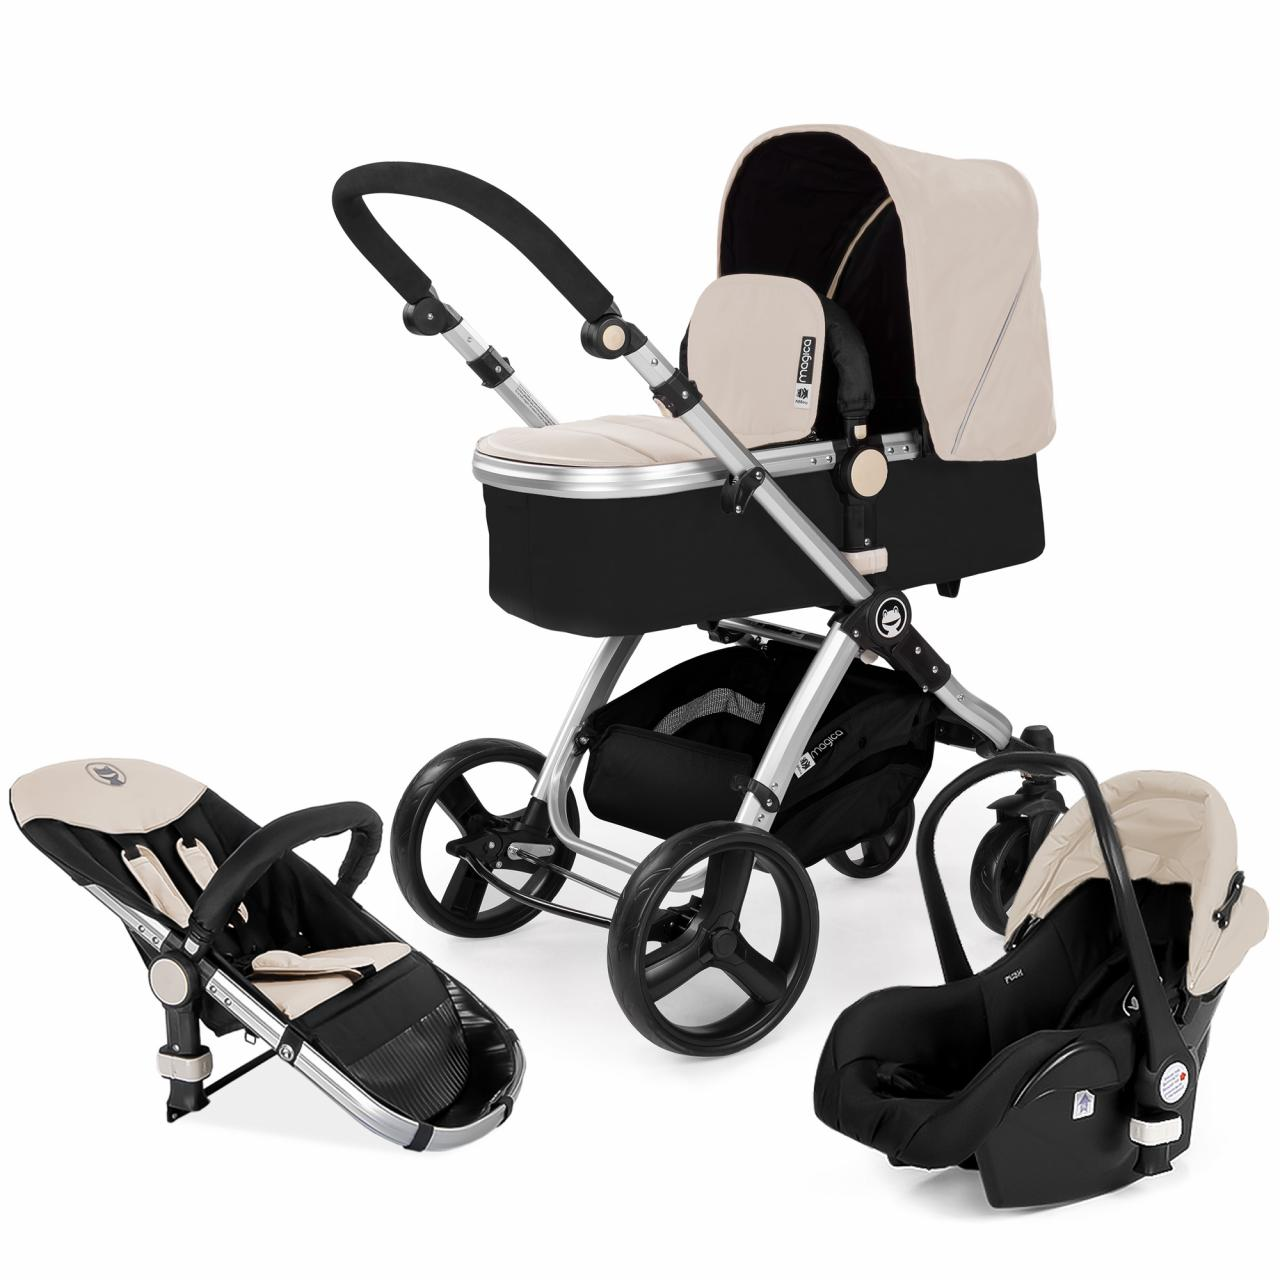 kombikinderwagen 3in1 kombi set kinderwagen inkl babyschale buggy kinderwagenset ebay. Black Bedroom Furniture Sets. Home Design Ideas